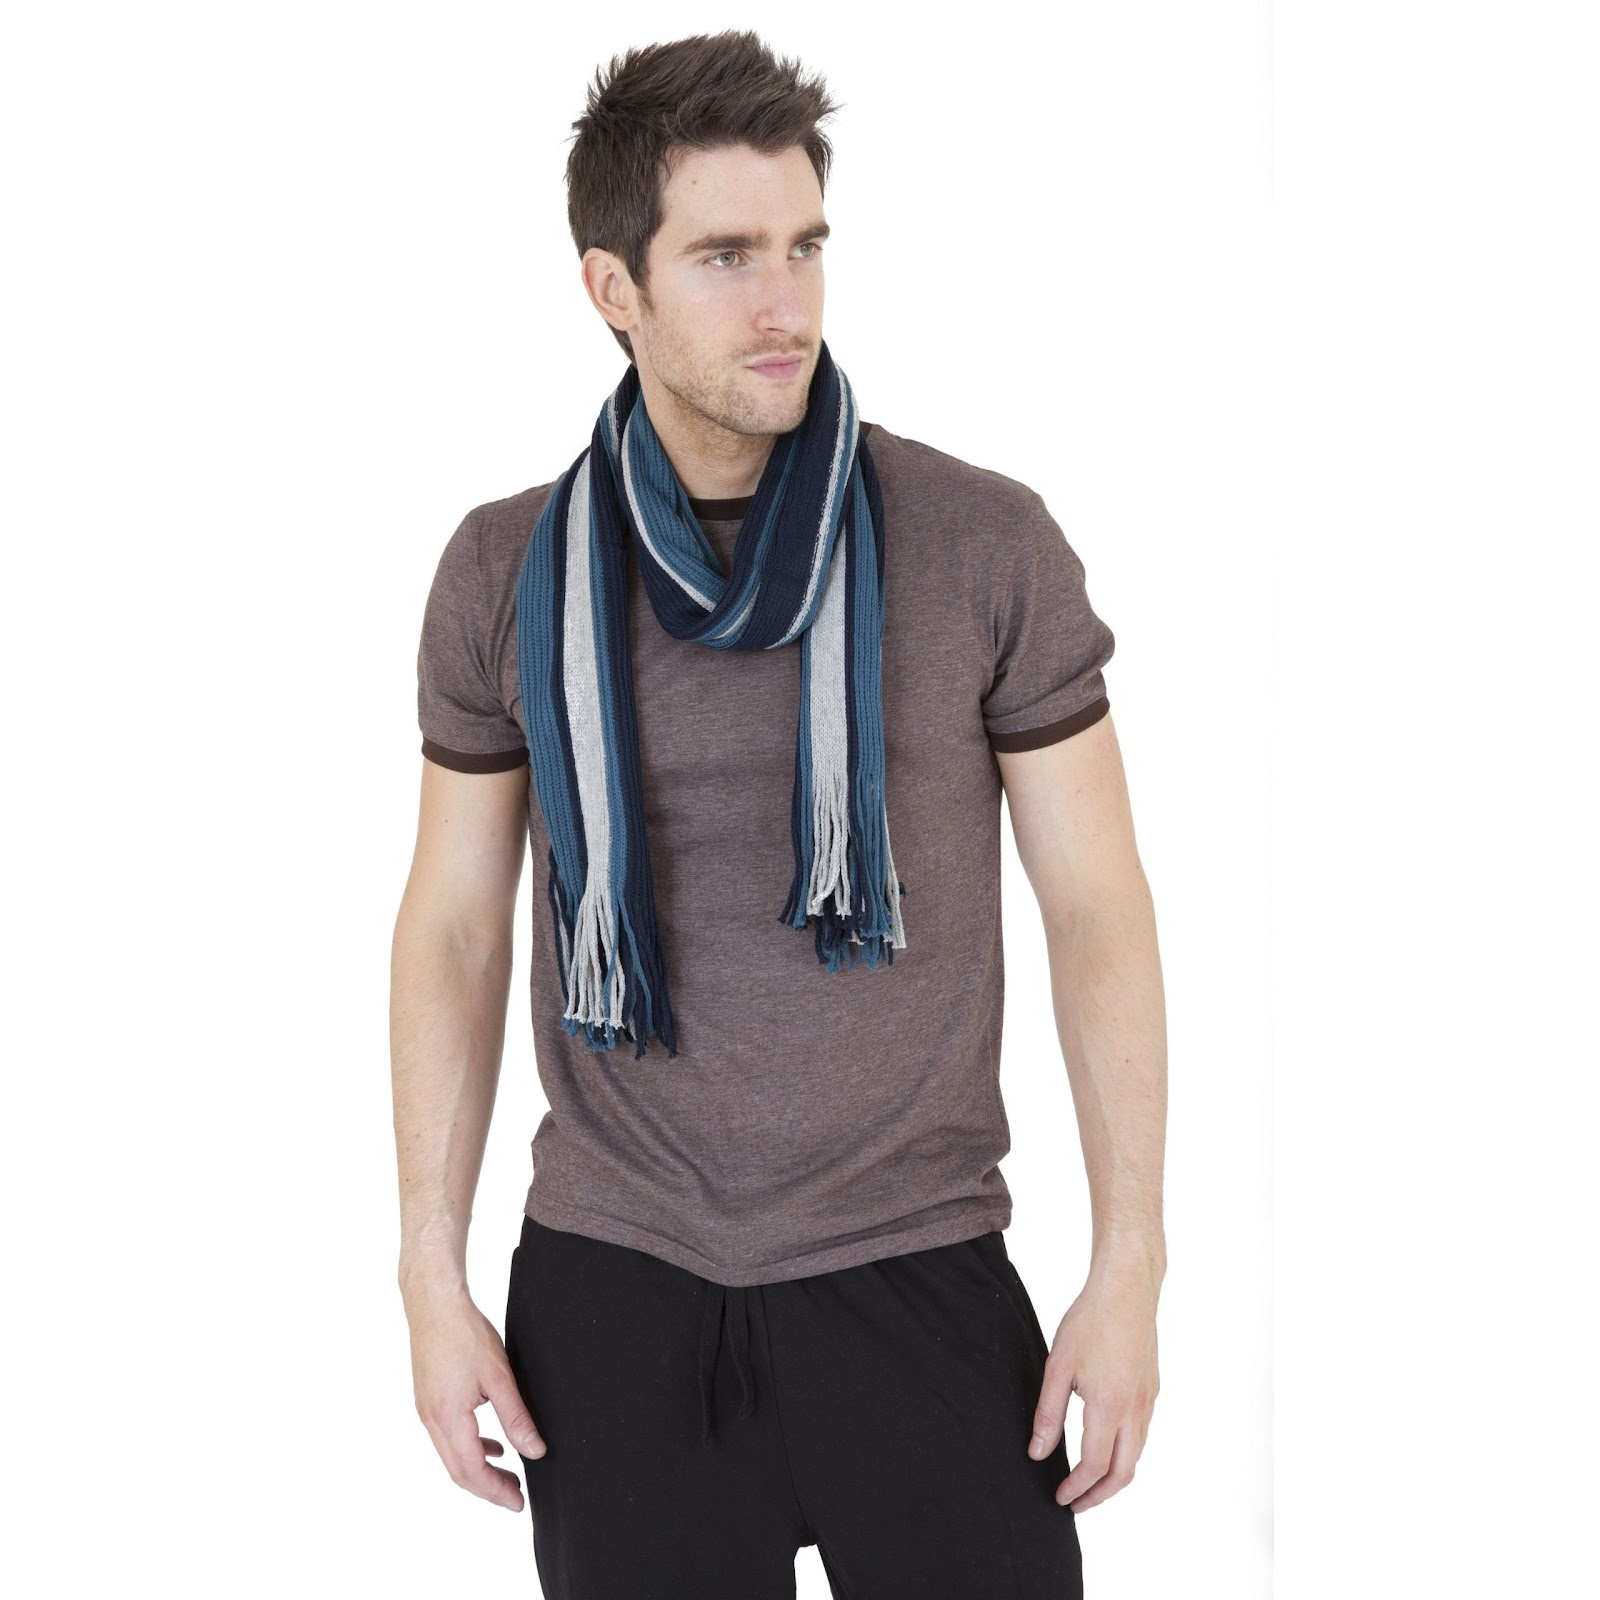 Shop Hudson's Bay for the latest in men's scarves & earwarmers to help you stay warm! Find Ralph Lauren, Calvin Klein & other top name brands.